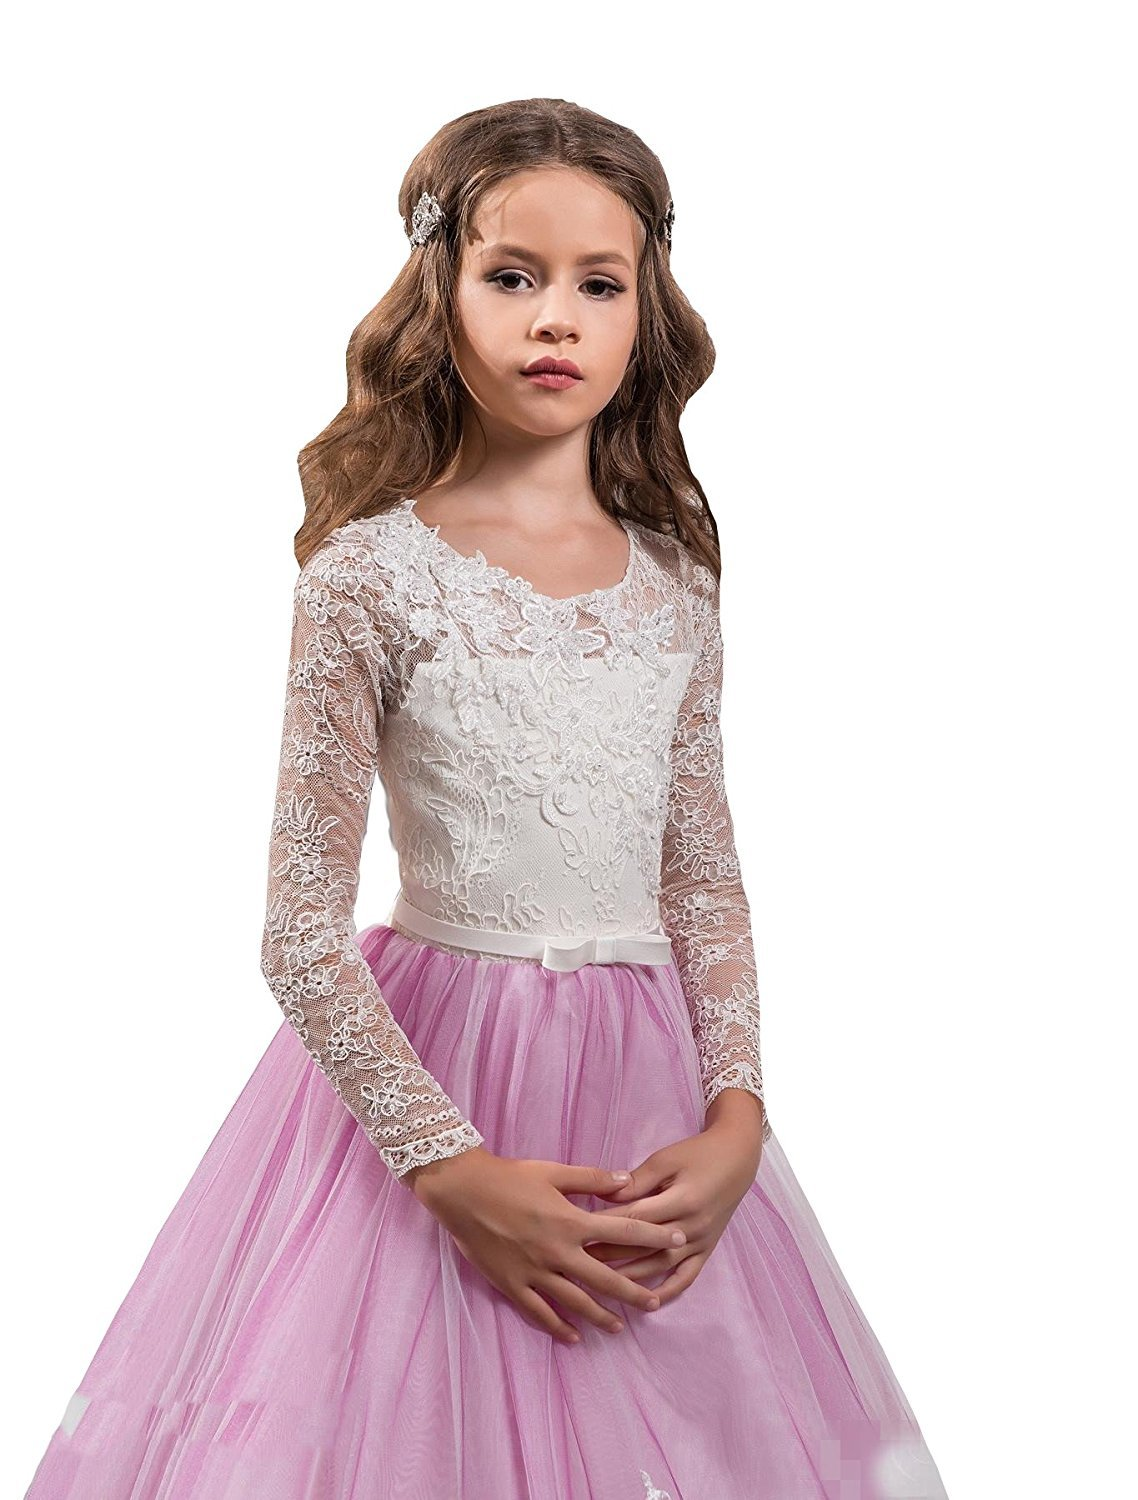 Nina Pink Ivory Flower Girl Dresses Appliques Floor Length Cute Kids Party Prom Dress For Wedding Baby Toddler Tutu Gown (3)